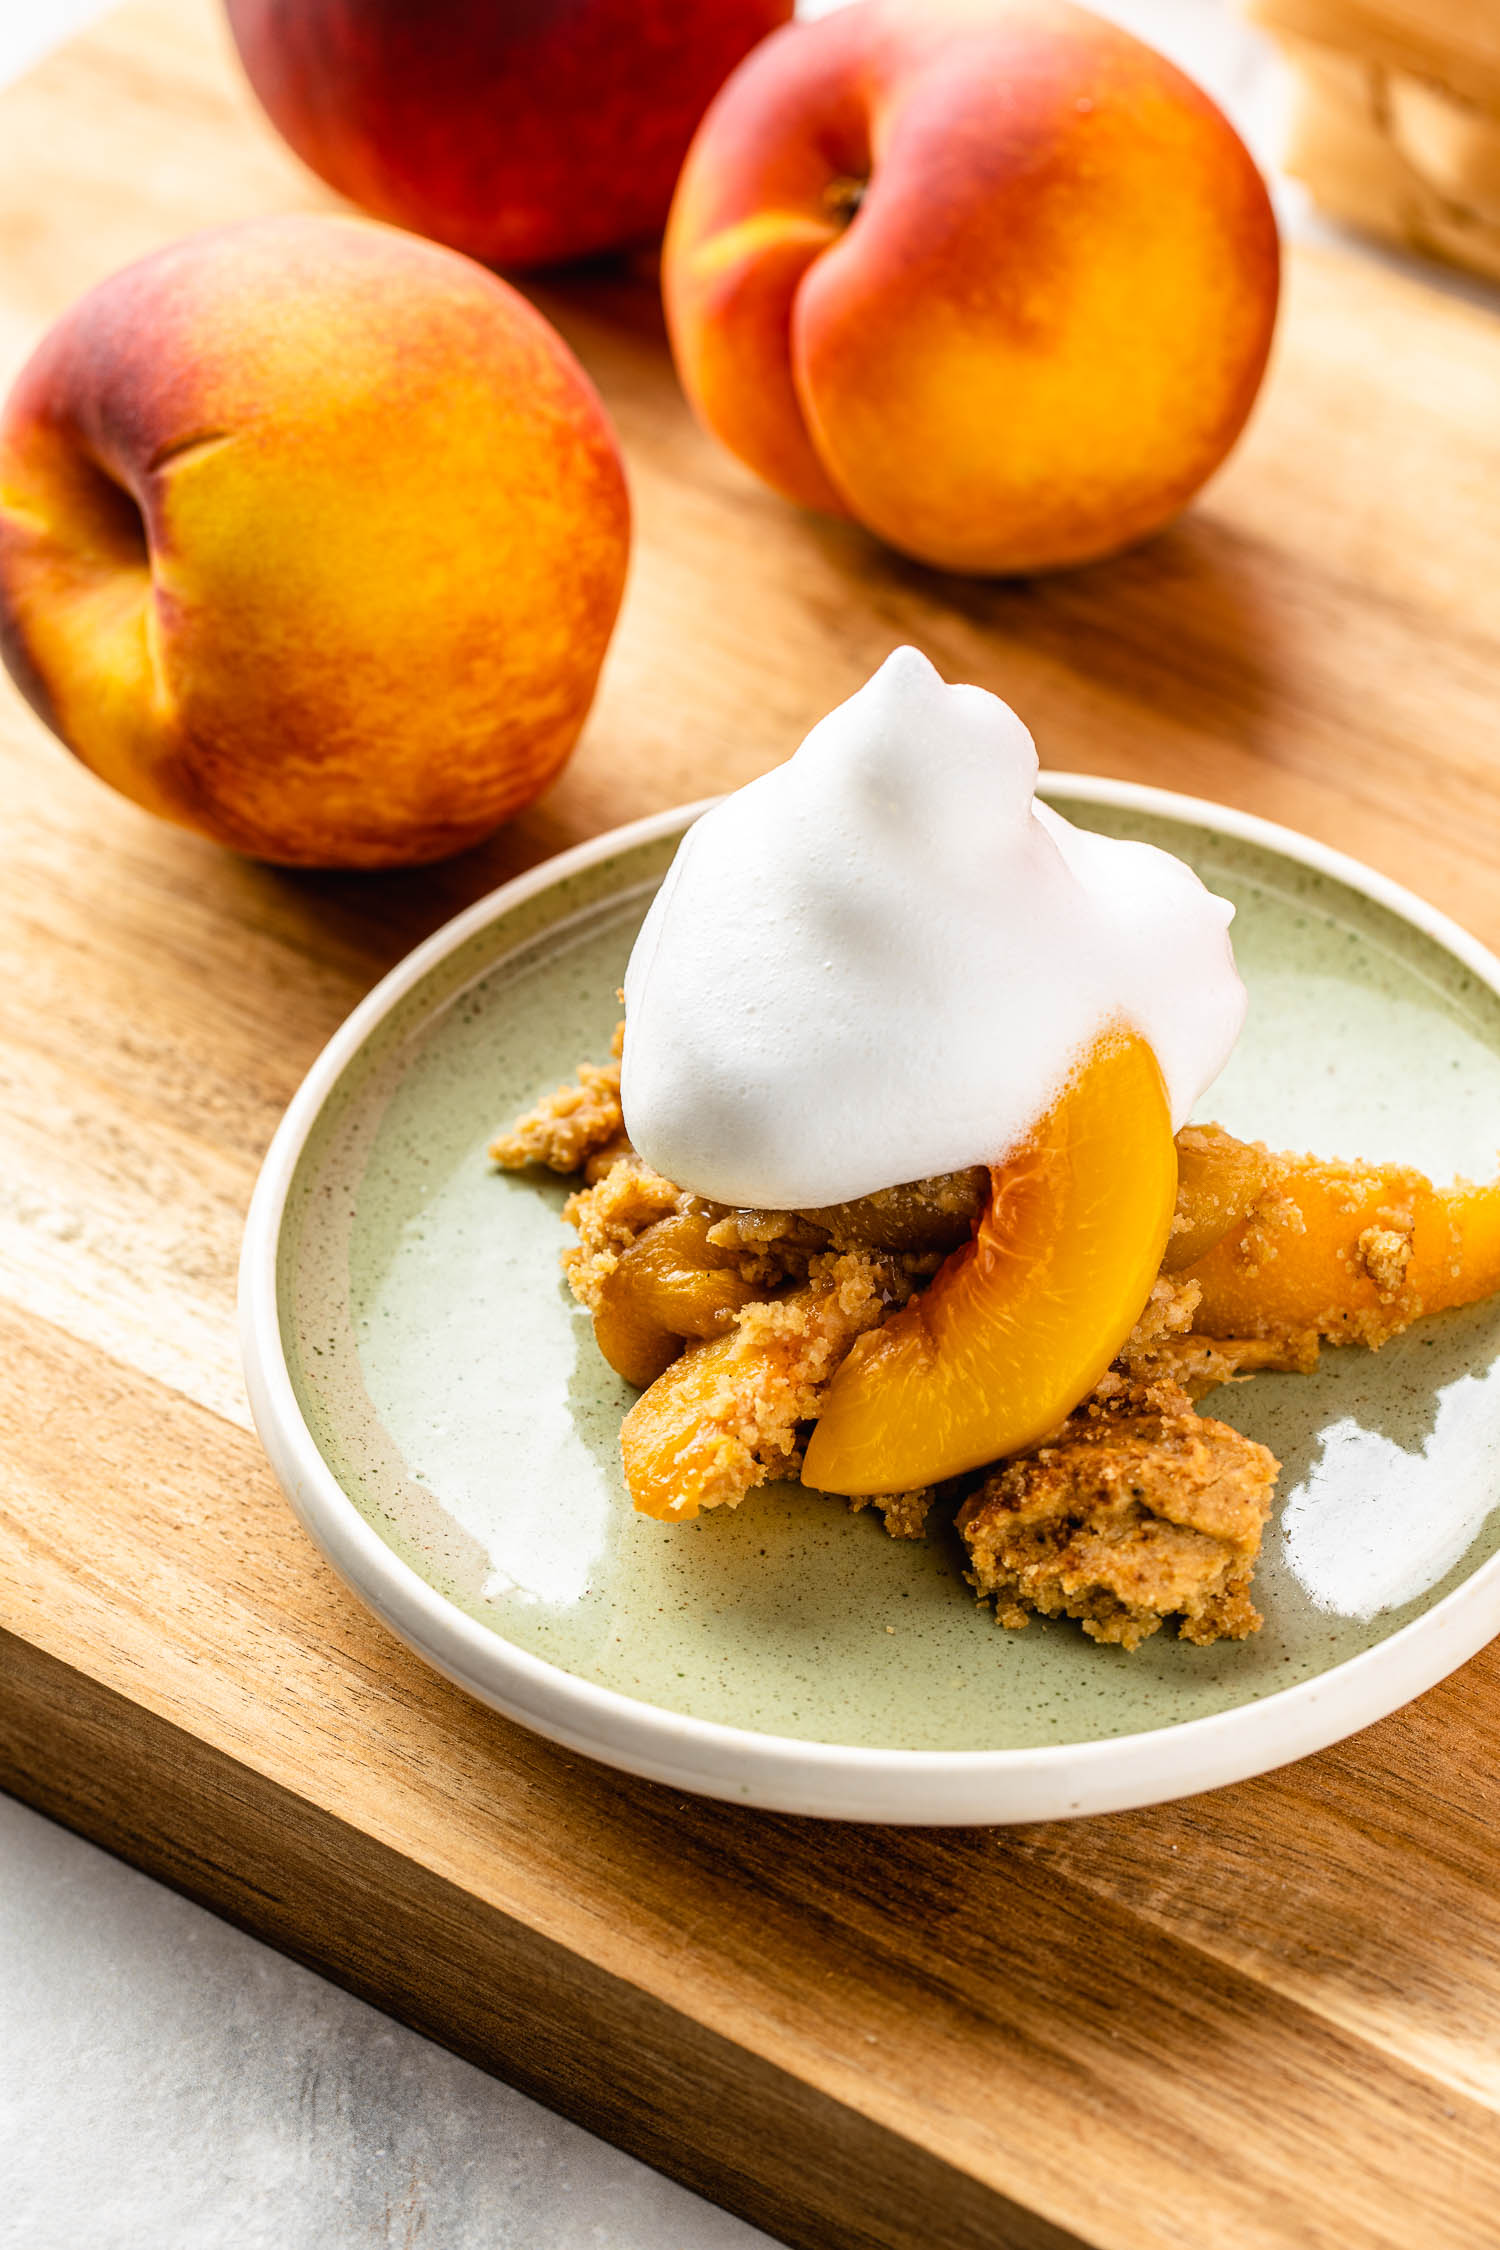 on a wooden cutting board sis two whole peaches and a small green plate holding a serving of peach cobbler with a dollop of aquafaba dairy free whipped cream